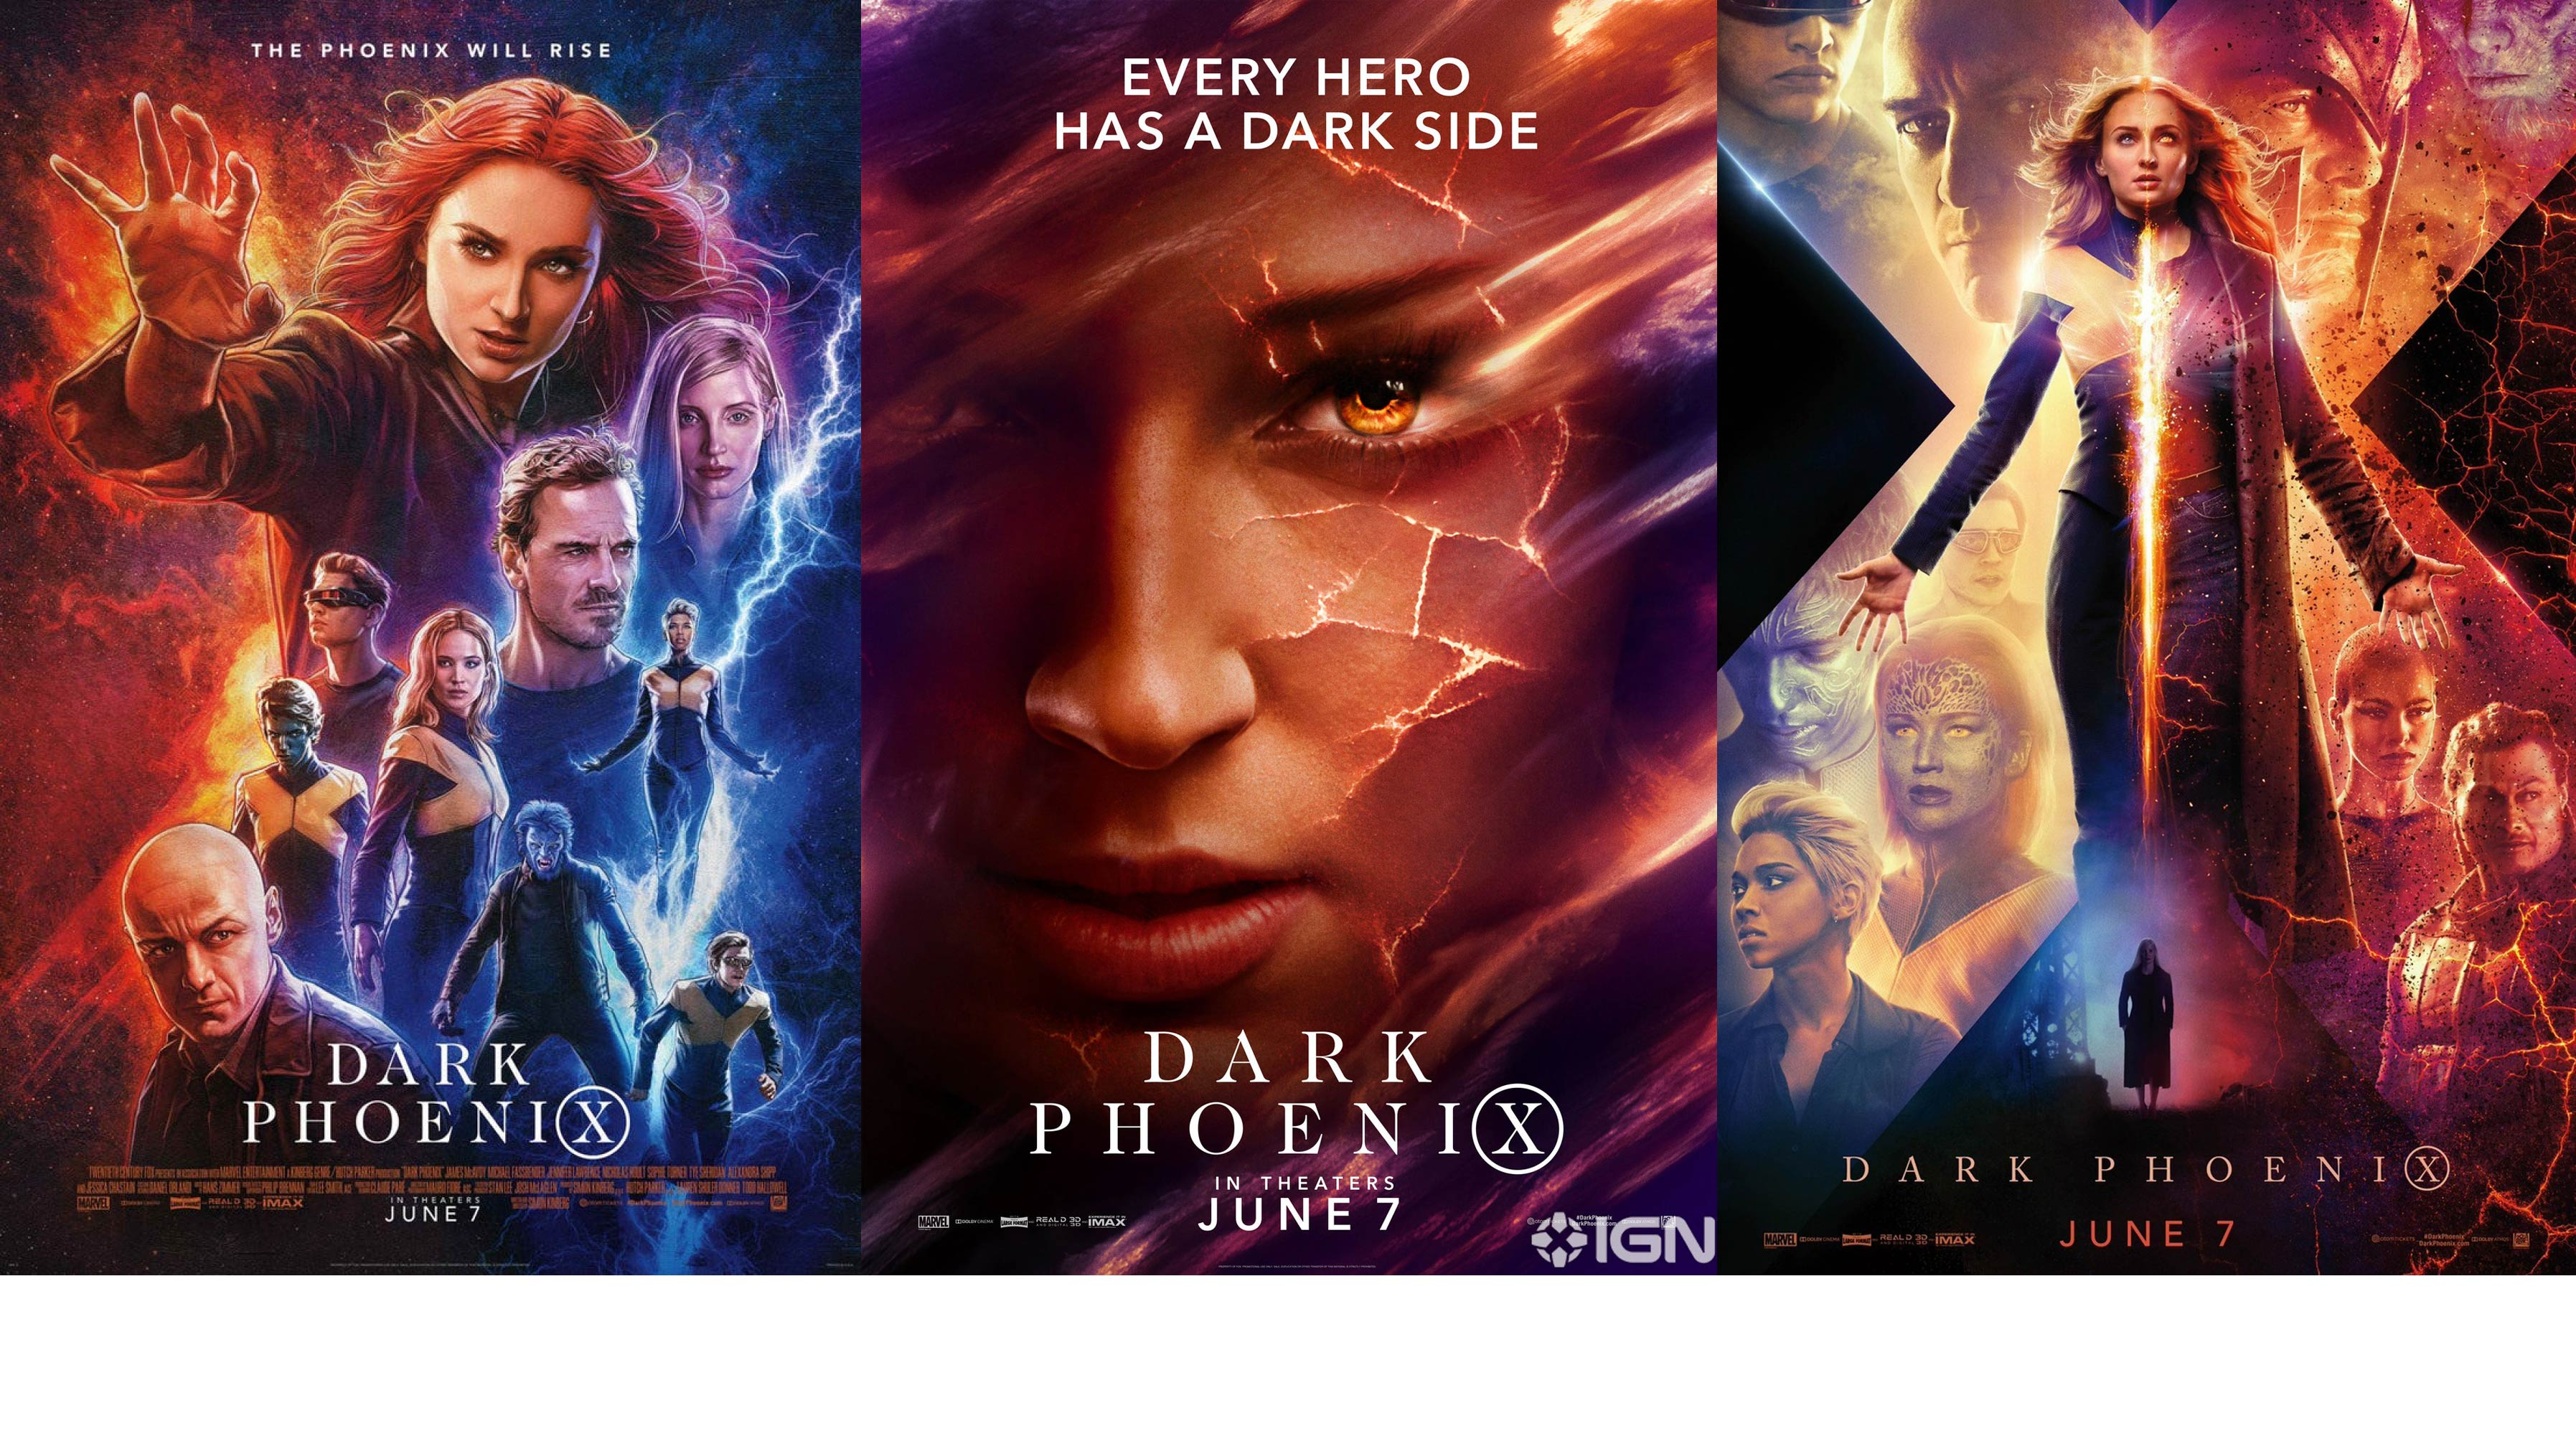 X-Men's Dark Phoenix: What to know before you watch the movie